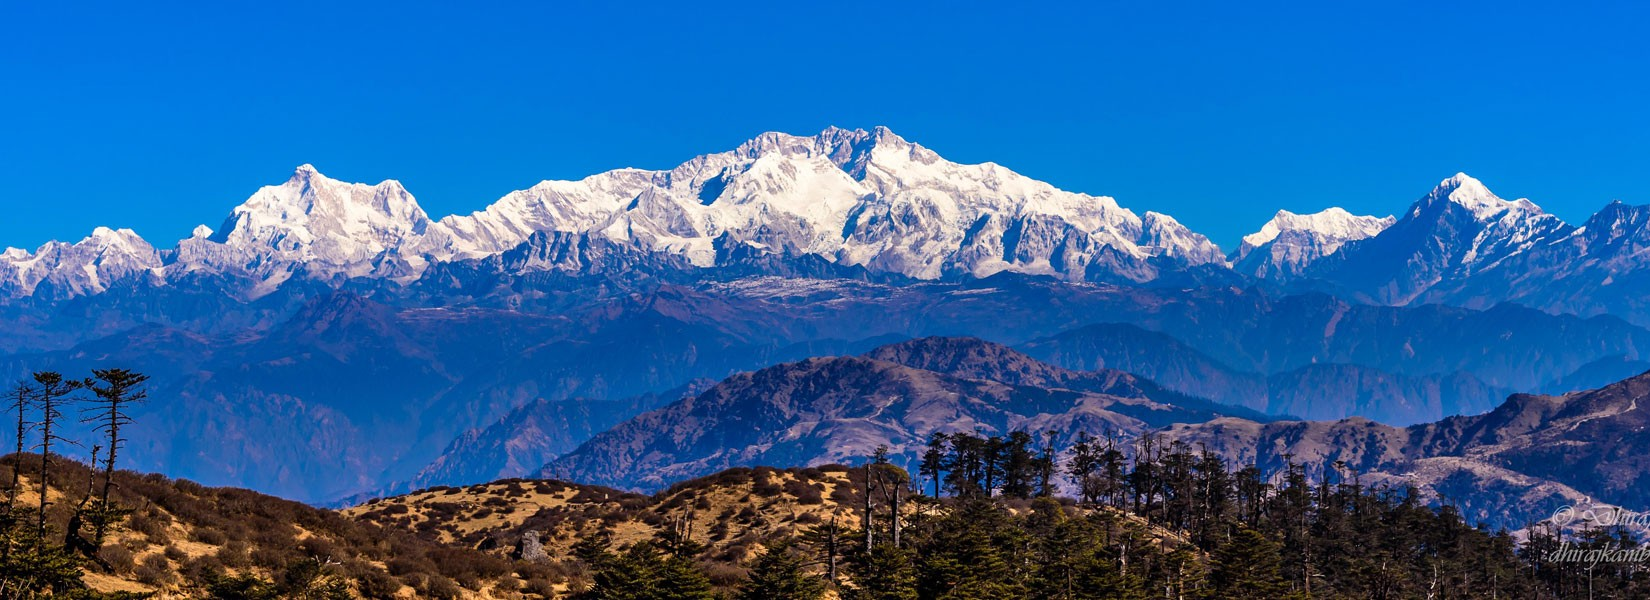 View of Kanchenjunga Range from Sandakphu Hill Ilam Nepal